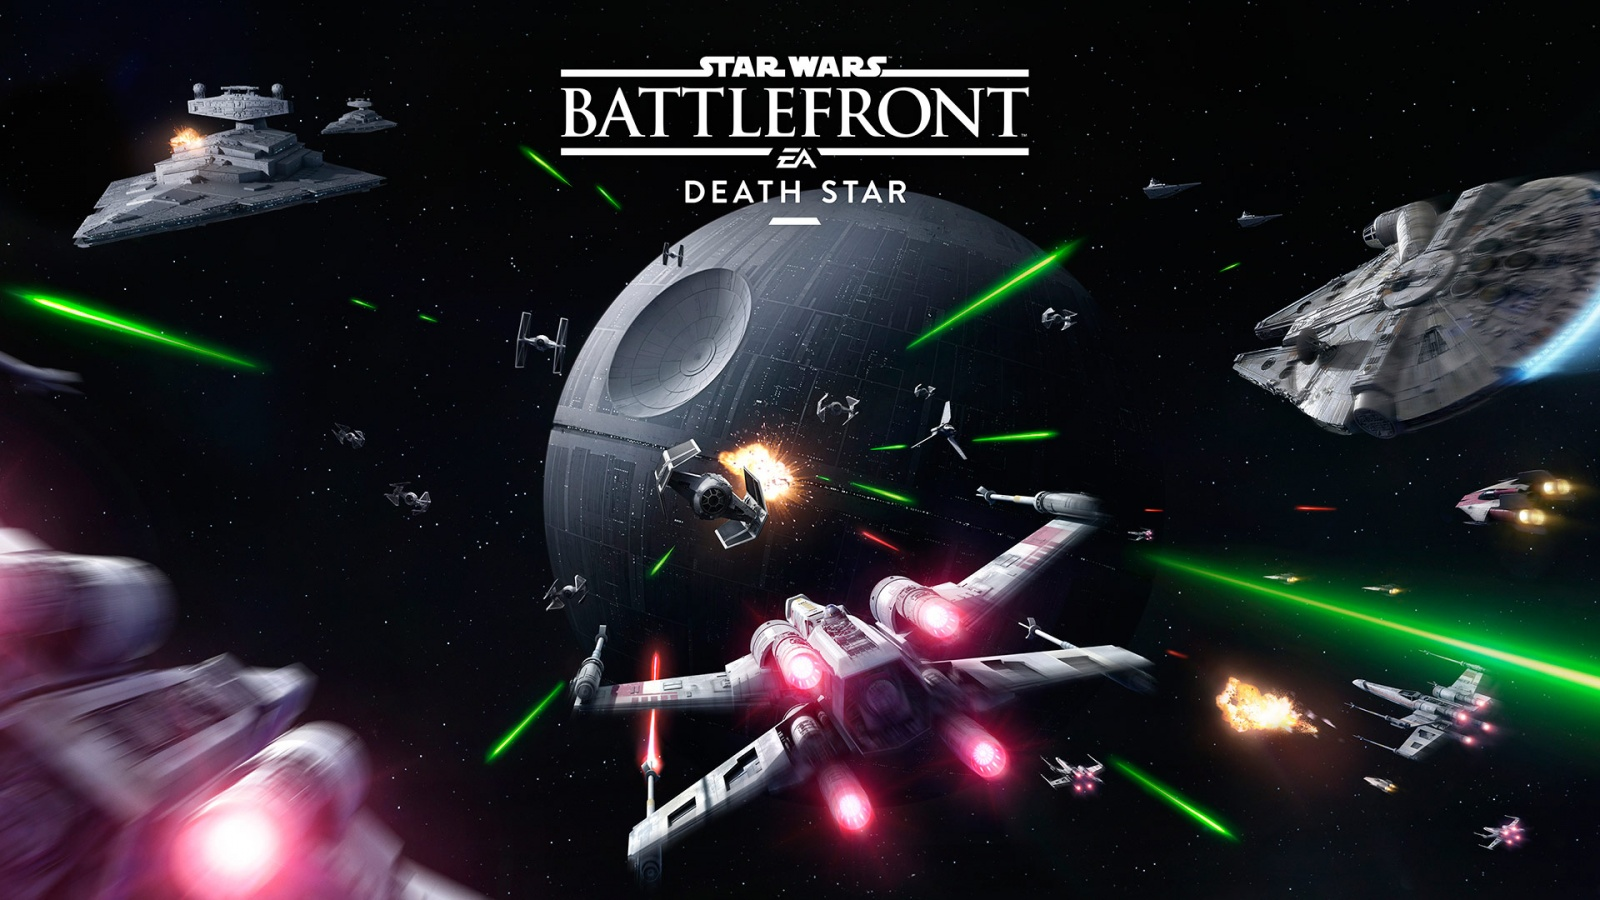 Star Wars Battlefront I, II, III: Star Wars Battlefront: Death Star — Звезда раздора